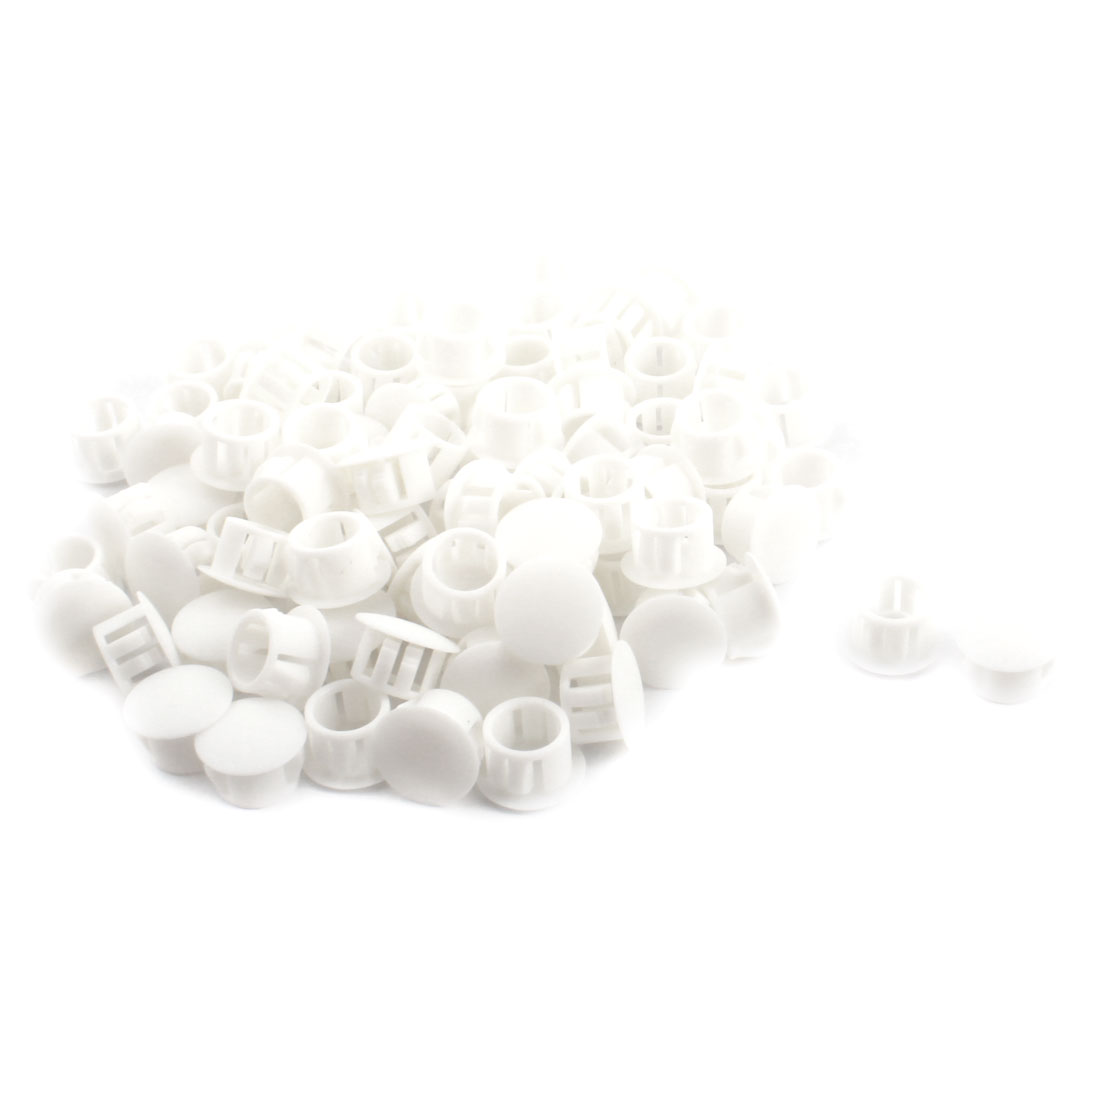 SKT-13 12.7mm Dia Round Insulated White Plastic Snap in Mount Lock Hole Cover Harness Fastener 100Pcs